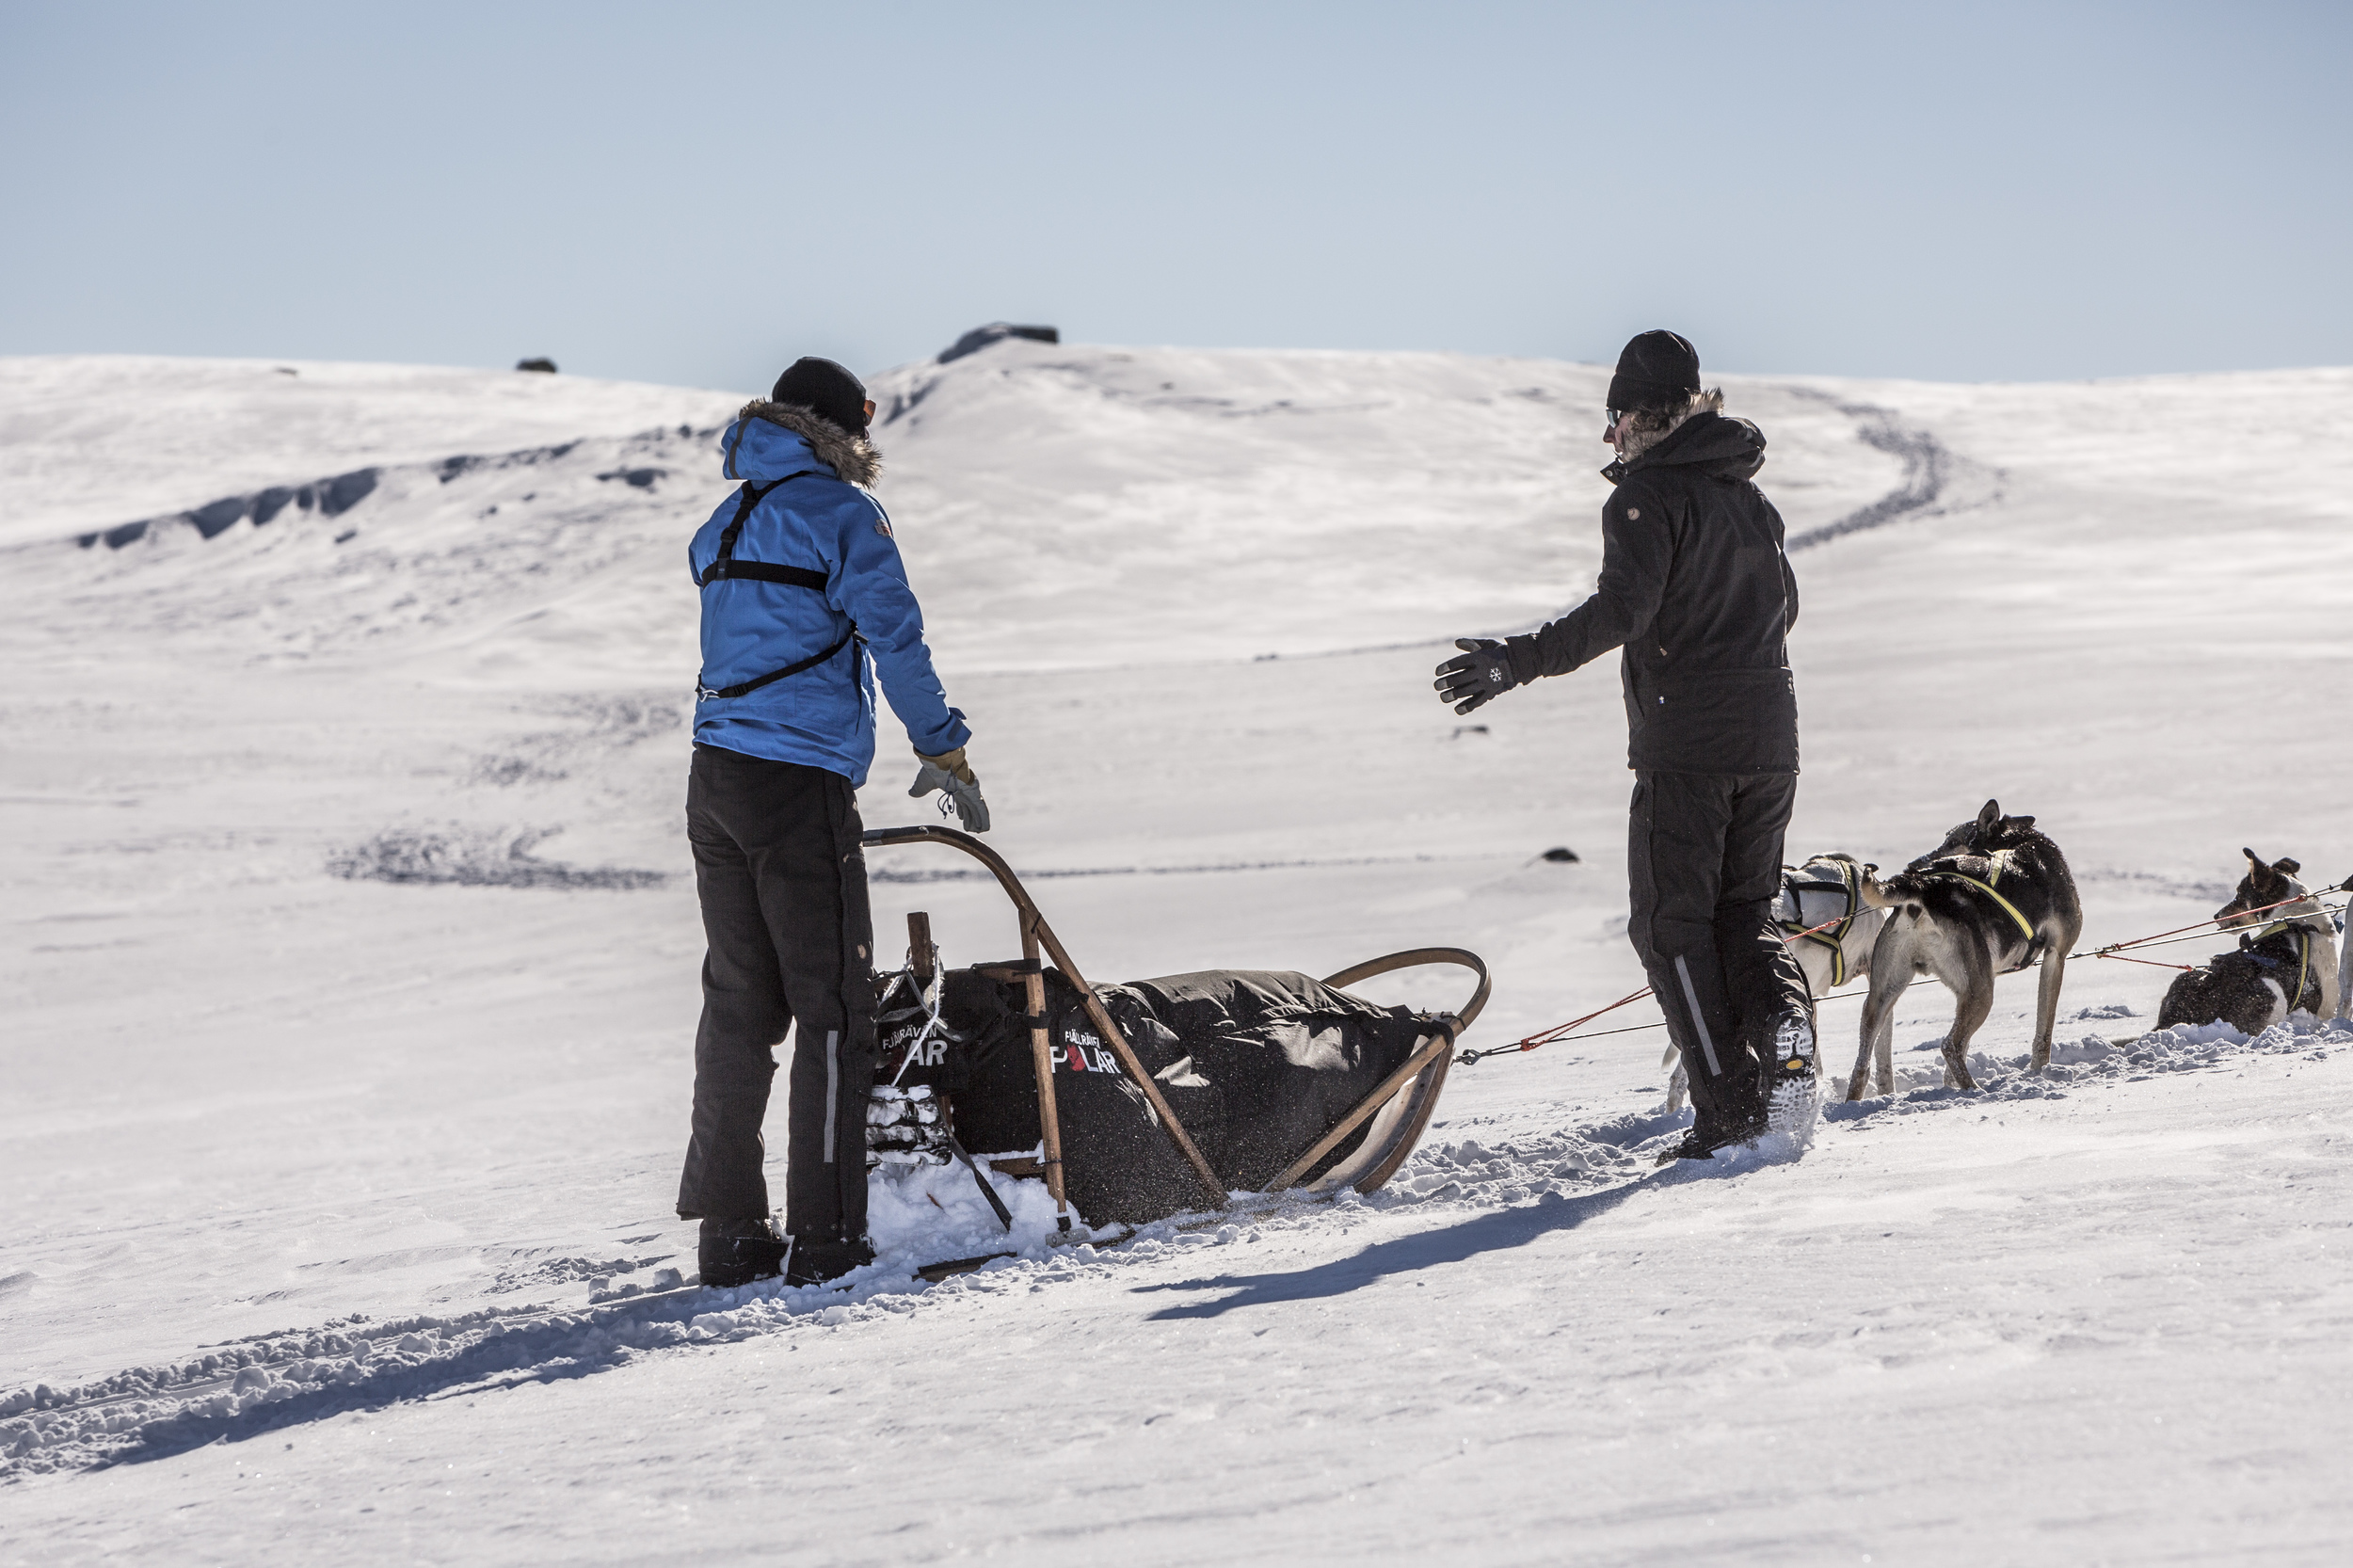 Our mushers, experts in each husky's temperament and capabilities, make adjustments to our dog teams on the fly when necessary. Photo by Håkan Wike for Fjällräven International. All rights reserved.)